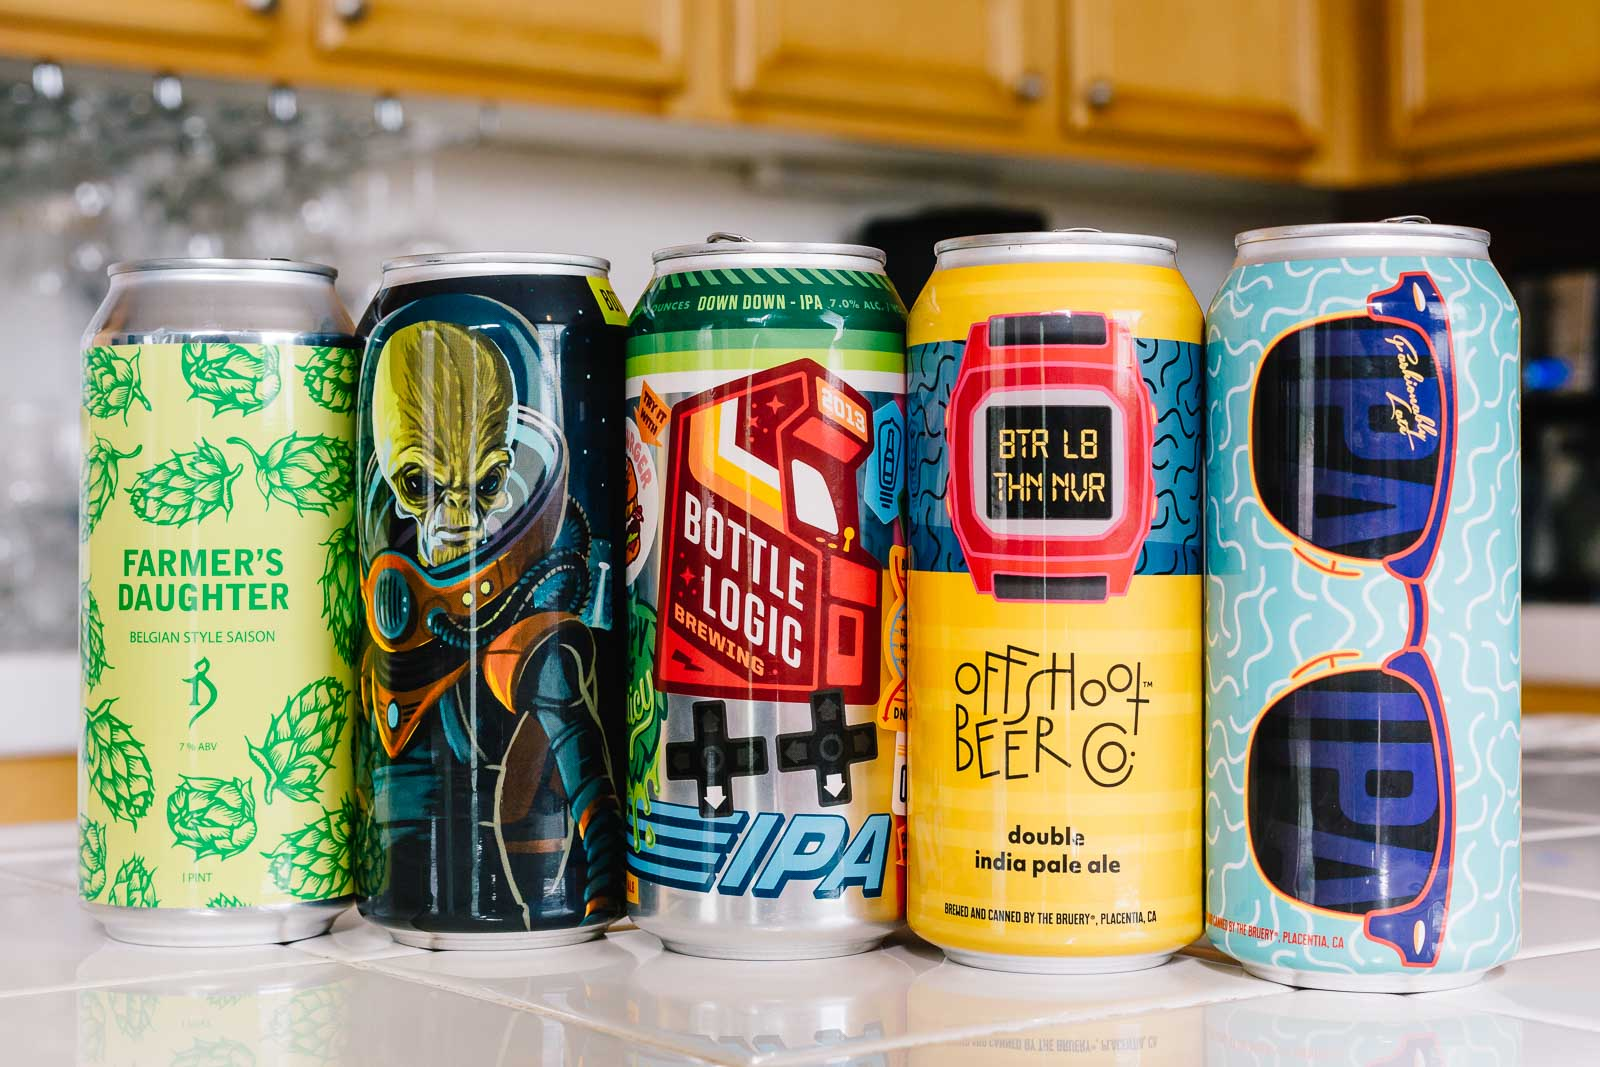 Beers from Offshoot Beer Co, The Alchemist, and Bottle Logic Brewing